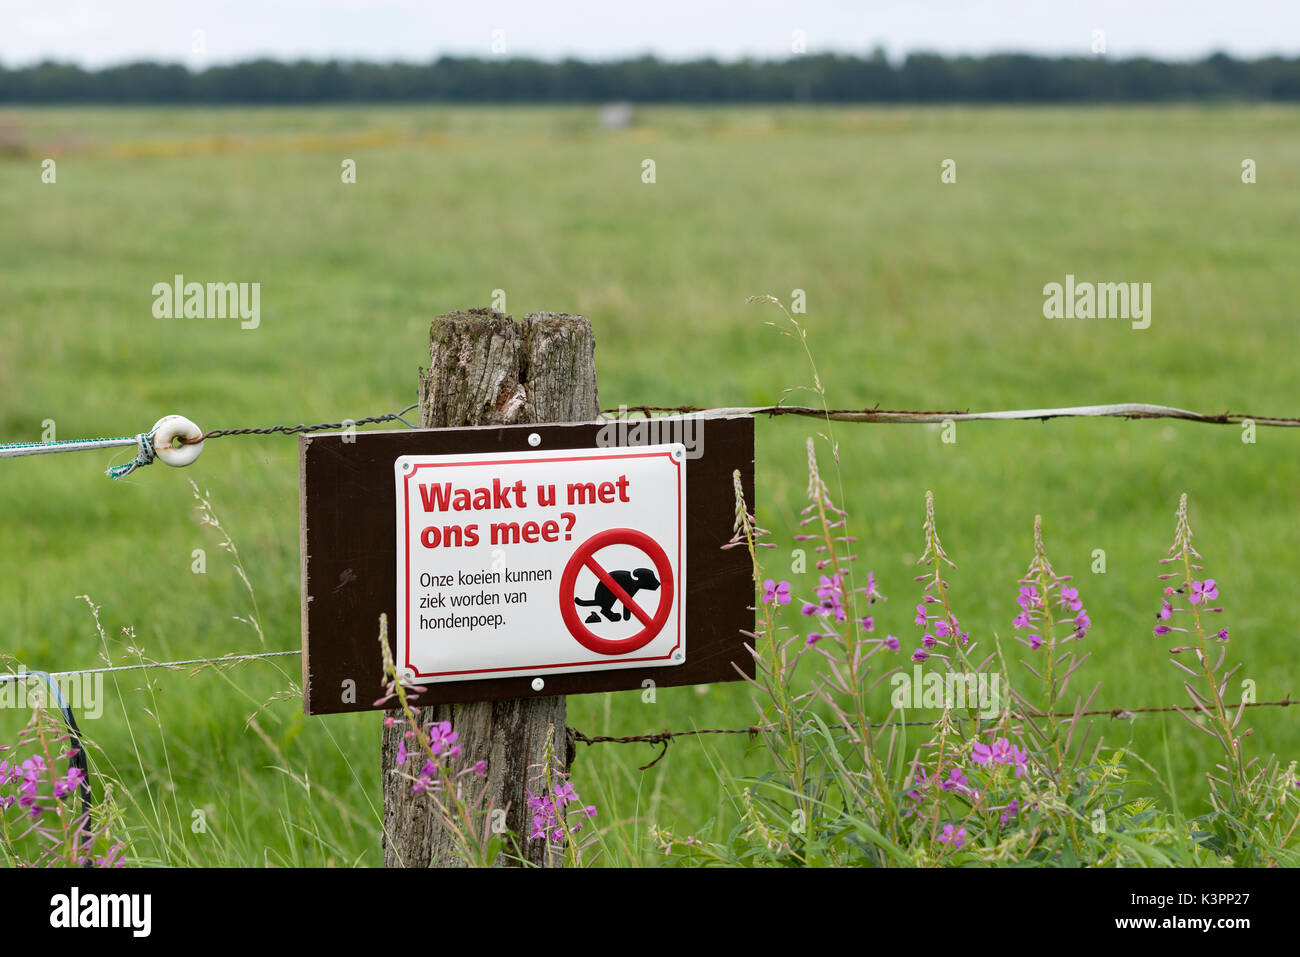 Join us watching? Sign against pathogenic dog poo near pasture for cows - Stock Image